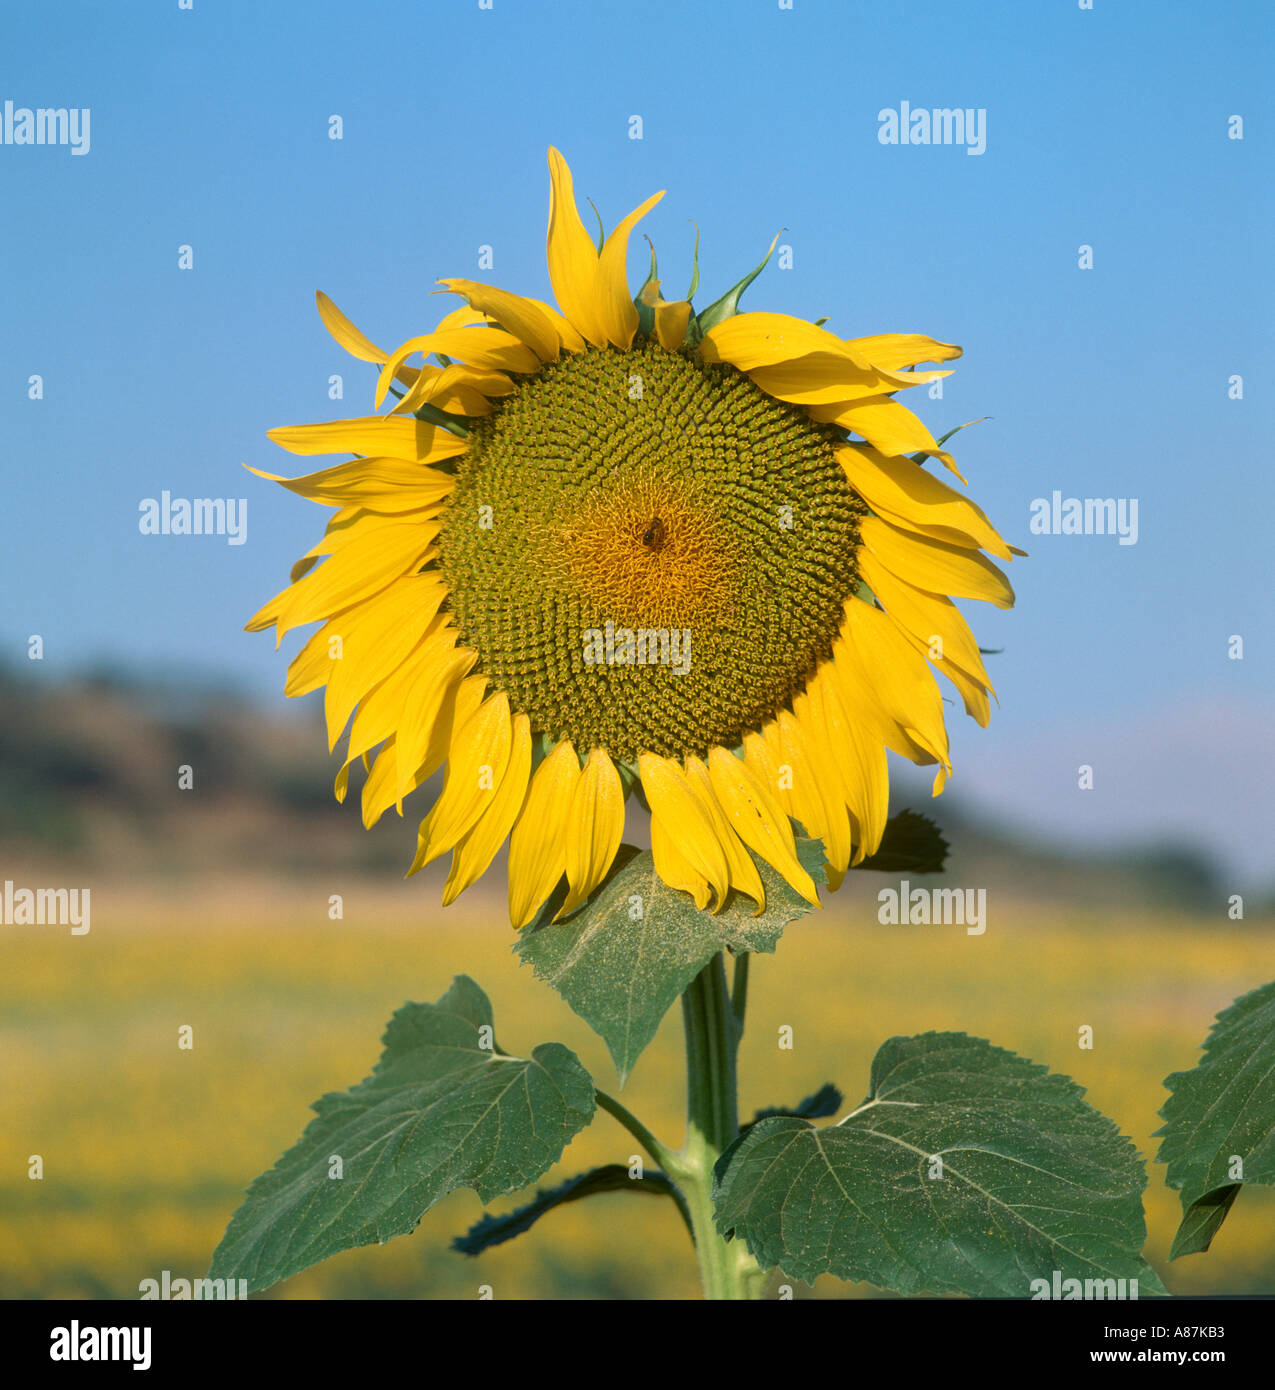 Close up of a sunflower (Helianthus annuus), Andalucia, Spain - Stock Image